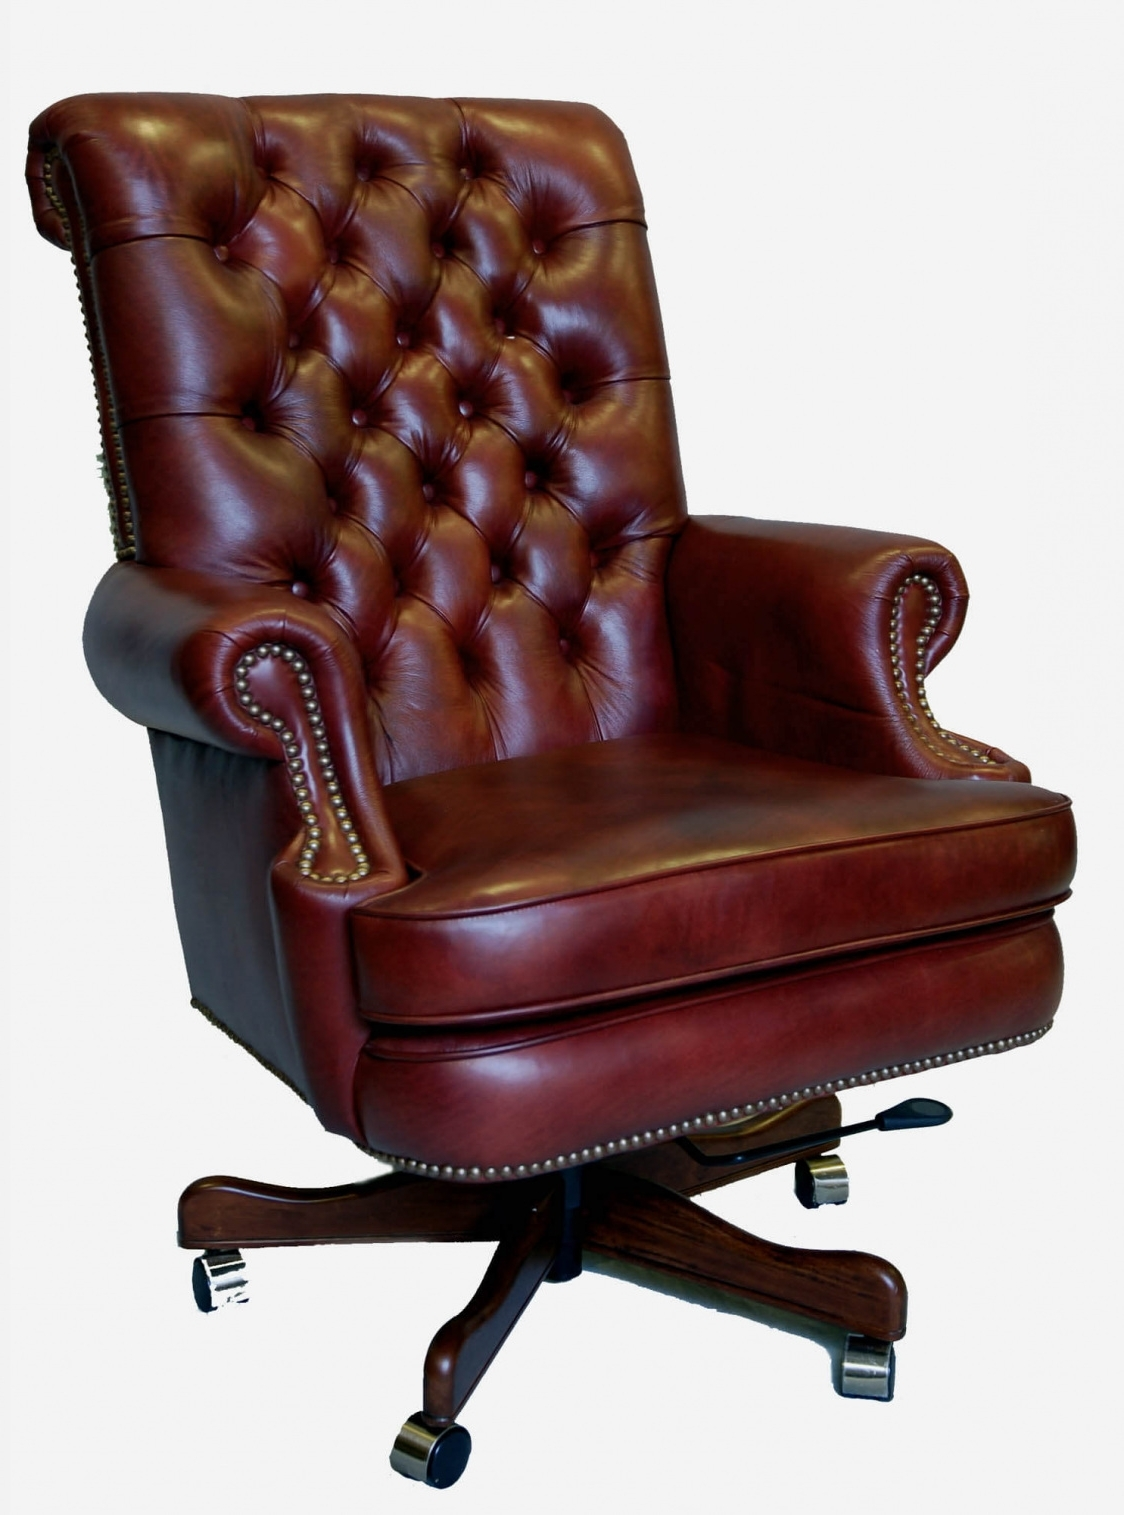 Brown Leather Executive Office Chairs Regarding Current Brown Leather Executive Office Chair – Space Saving Desk Ideas (View 14 of 20)